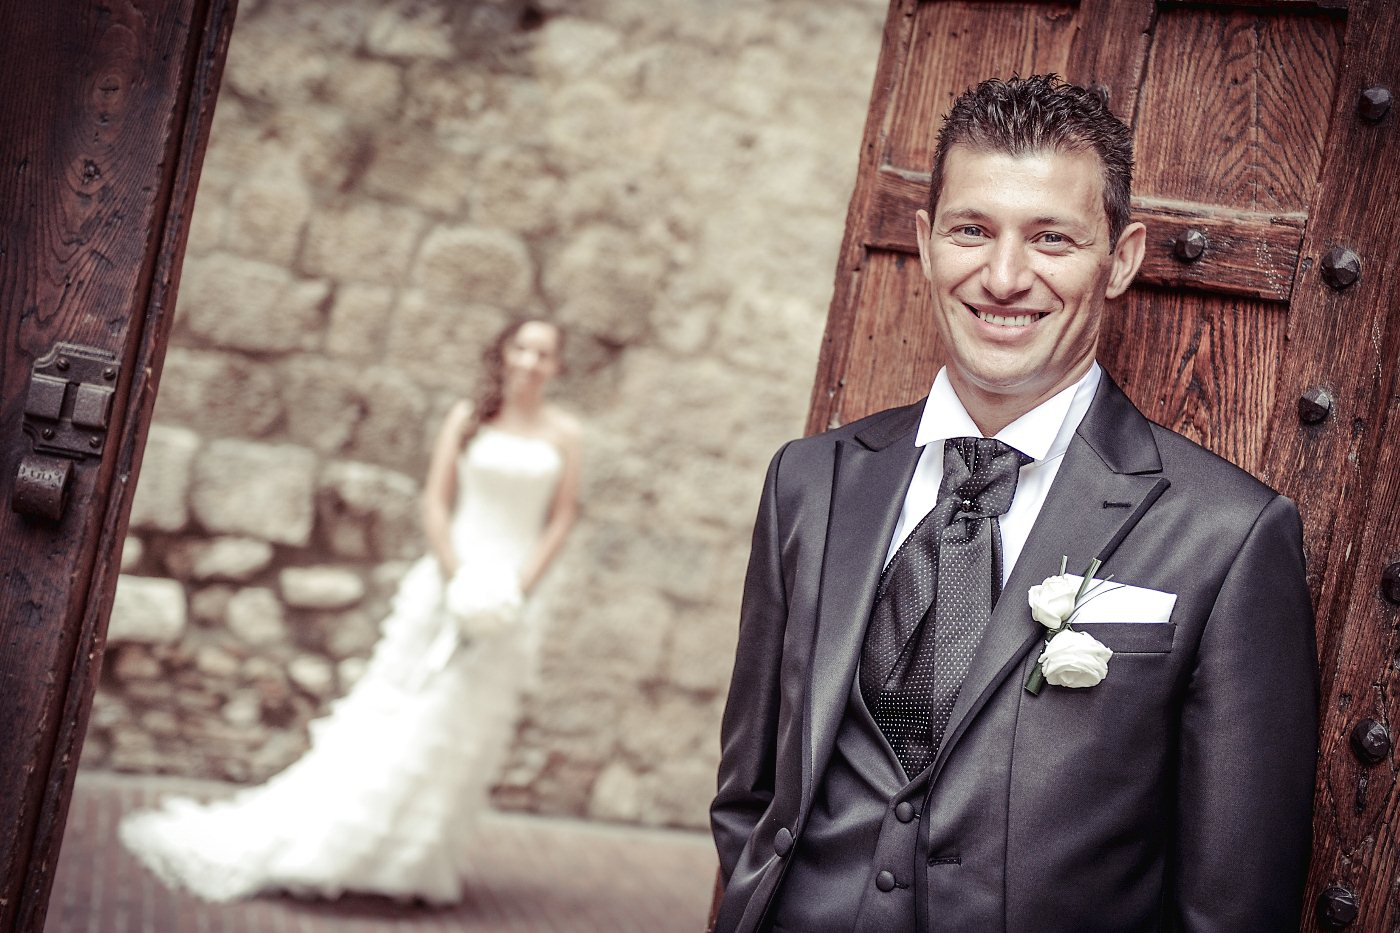 wedding photo san gimignano_11.jpg